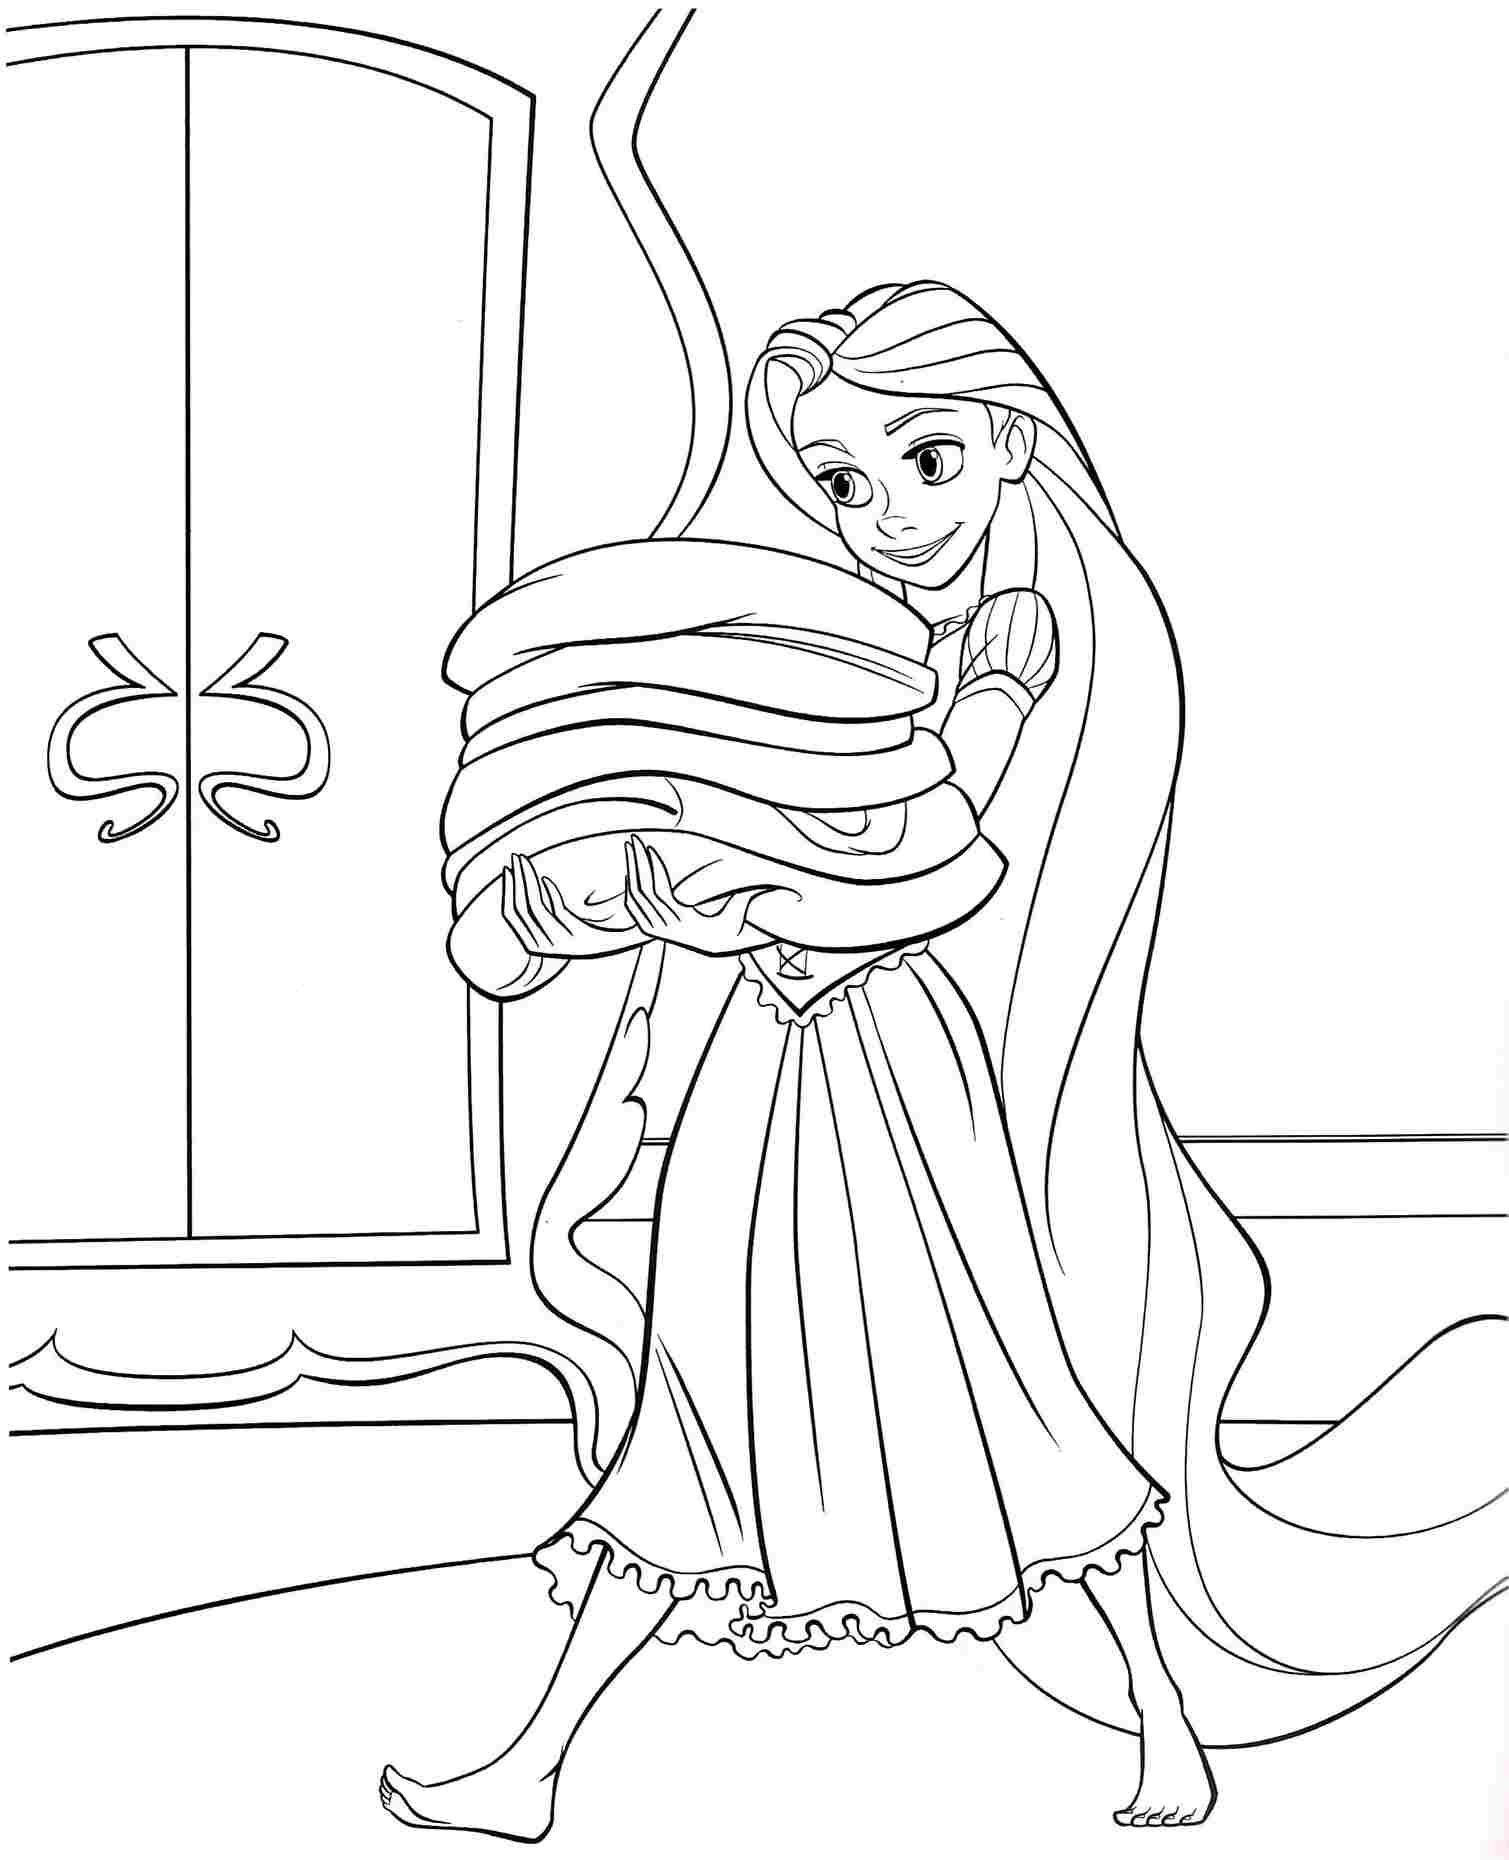 disney tangled coloring pages coloring pages disney princess tangled rapunzel free for tangled pages disney coloring